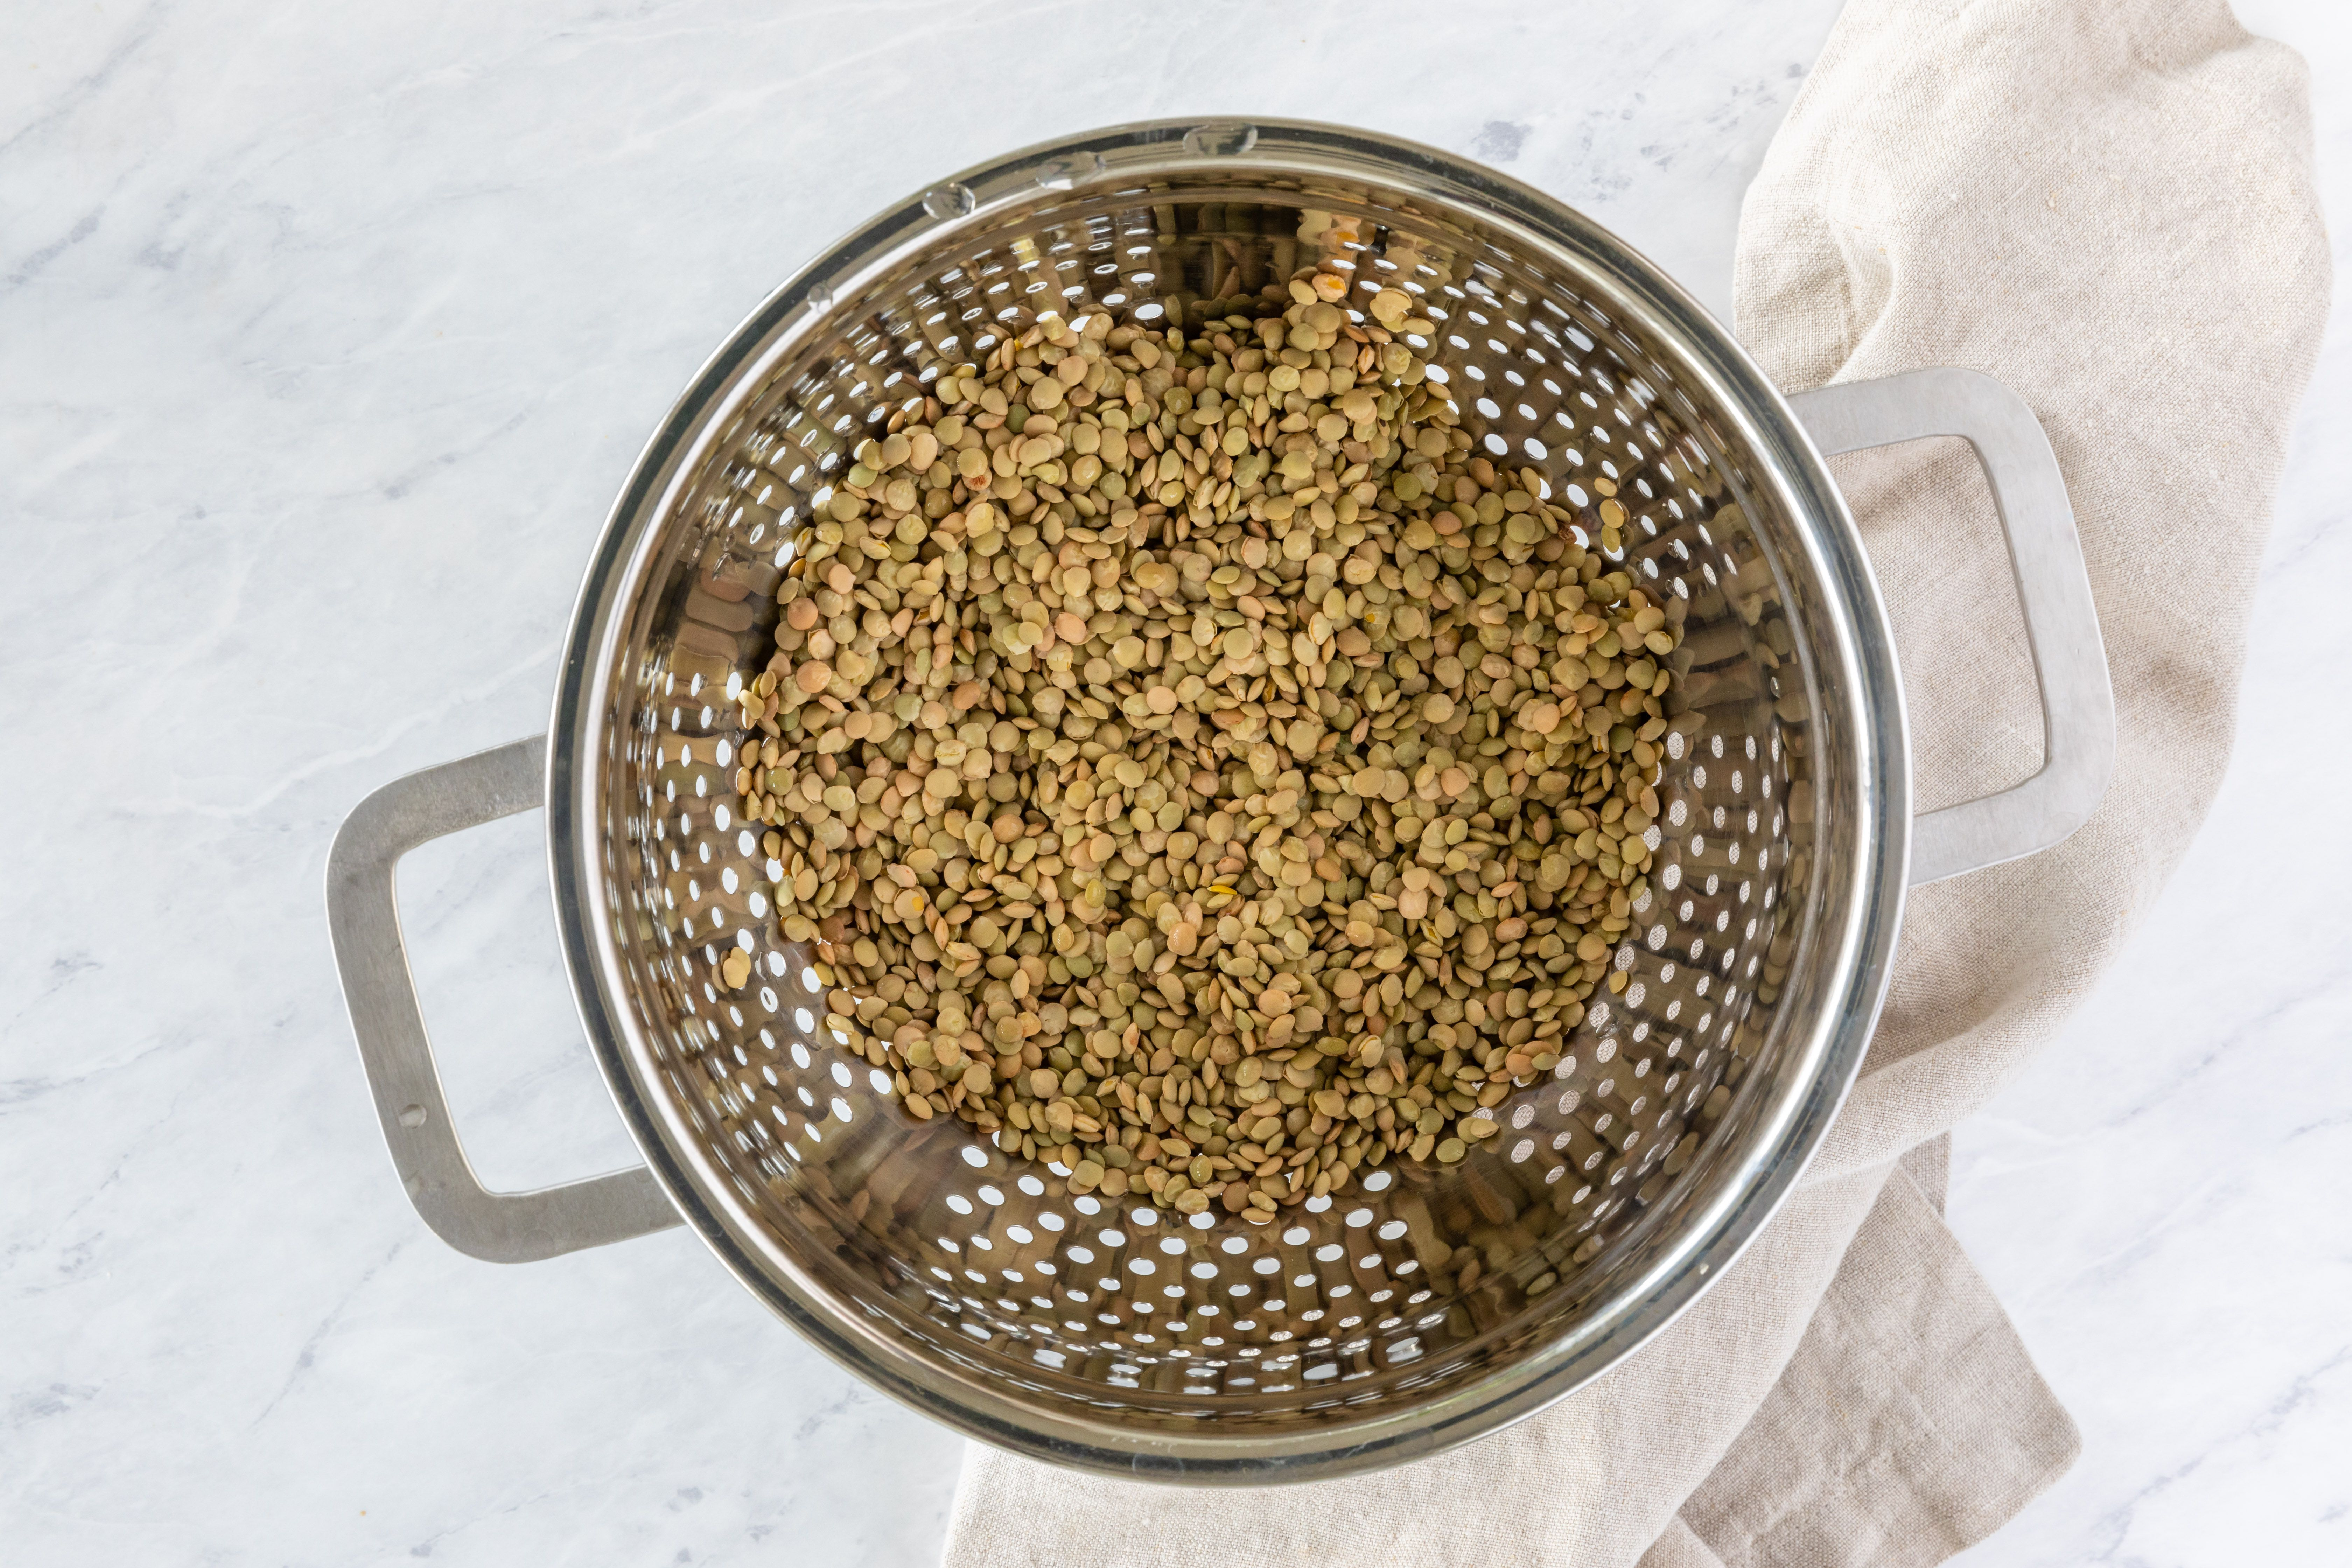 Rinse the lentils